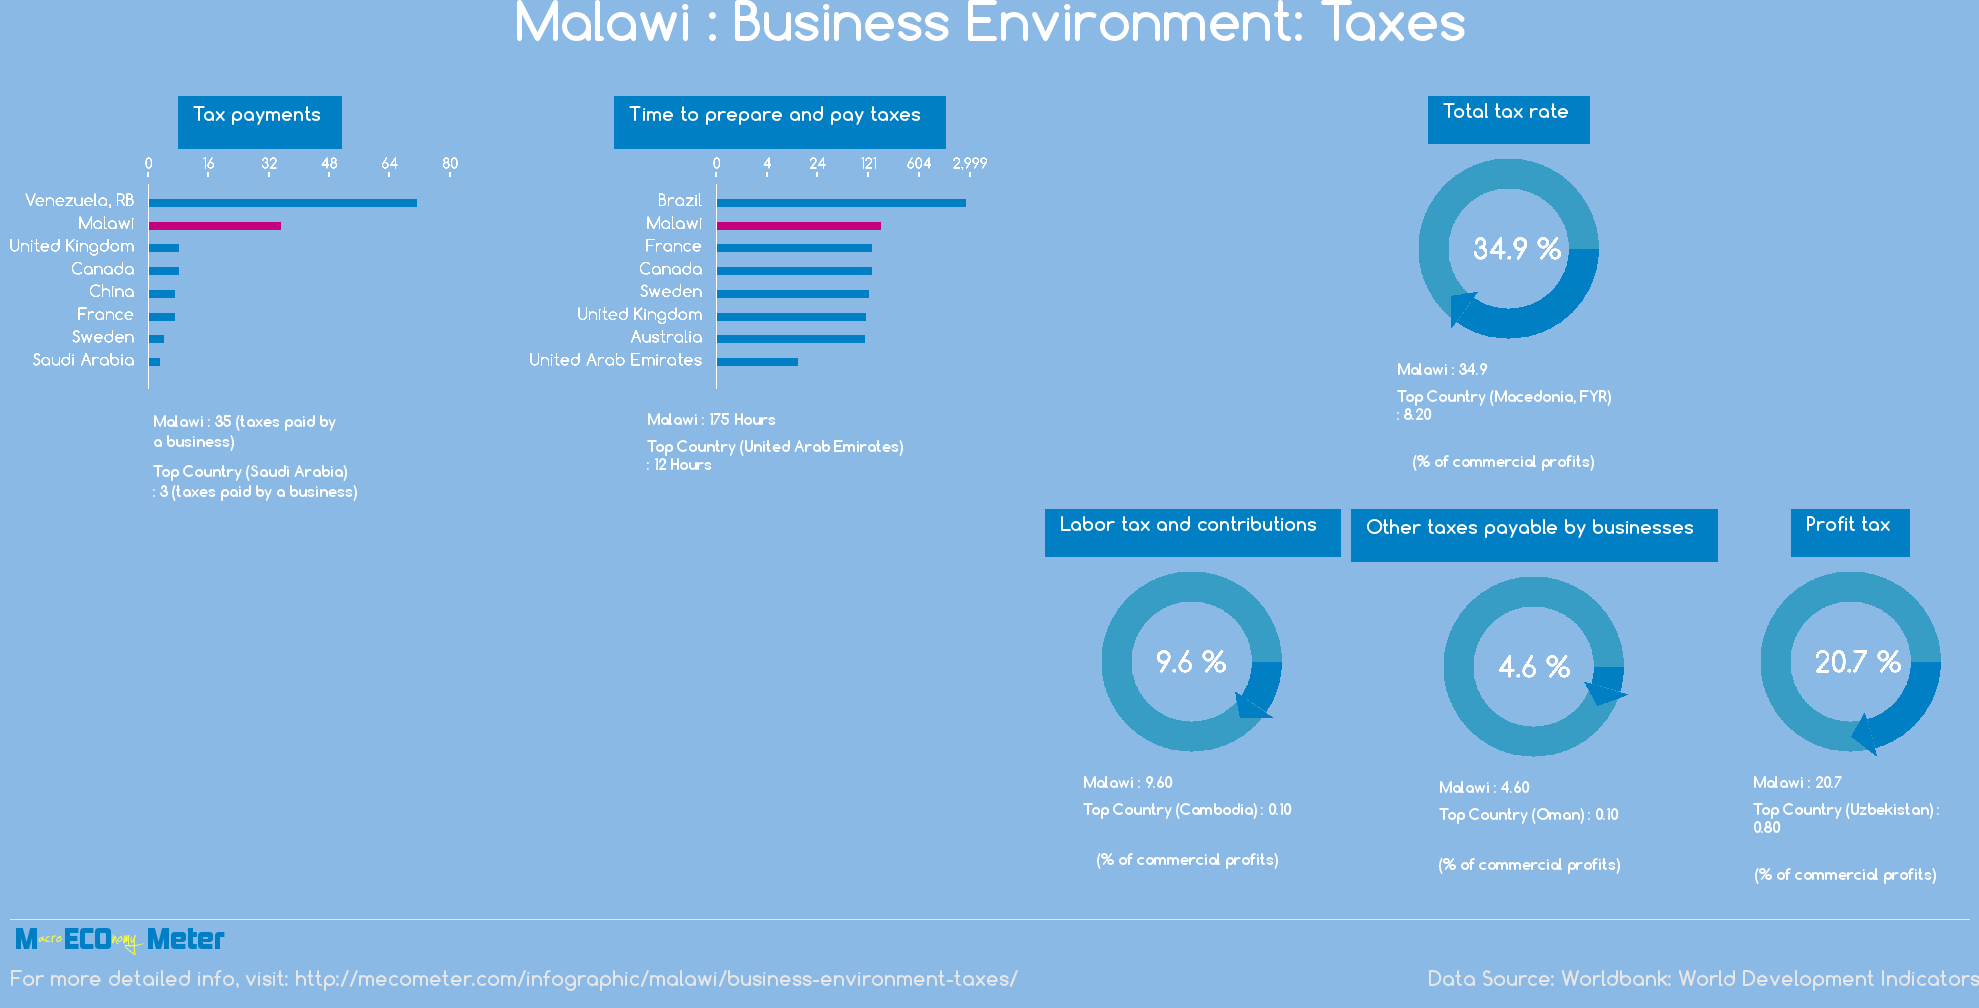 Malawi : Business Environment: Taxes